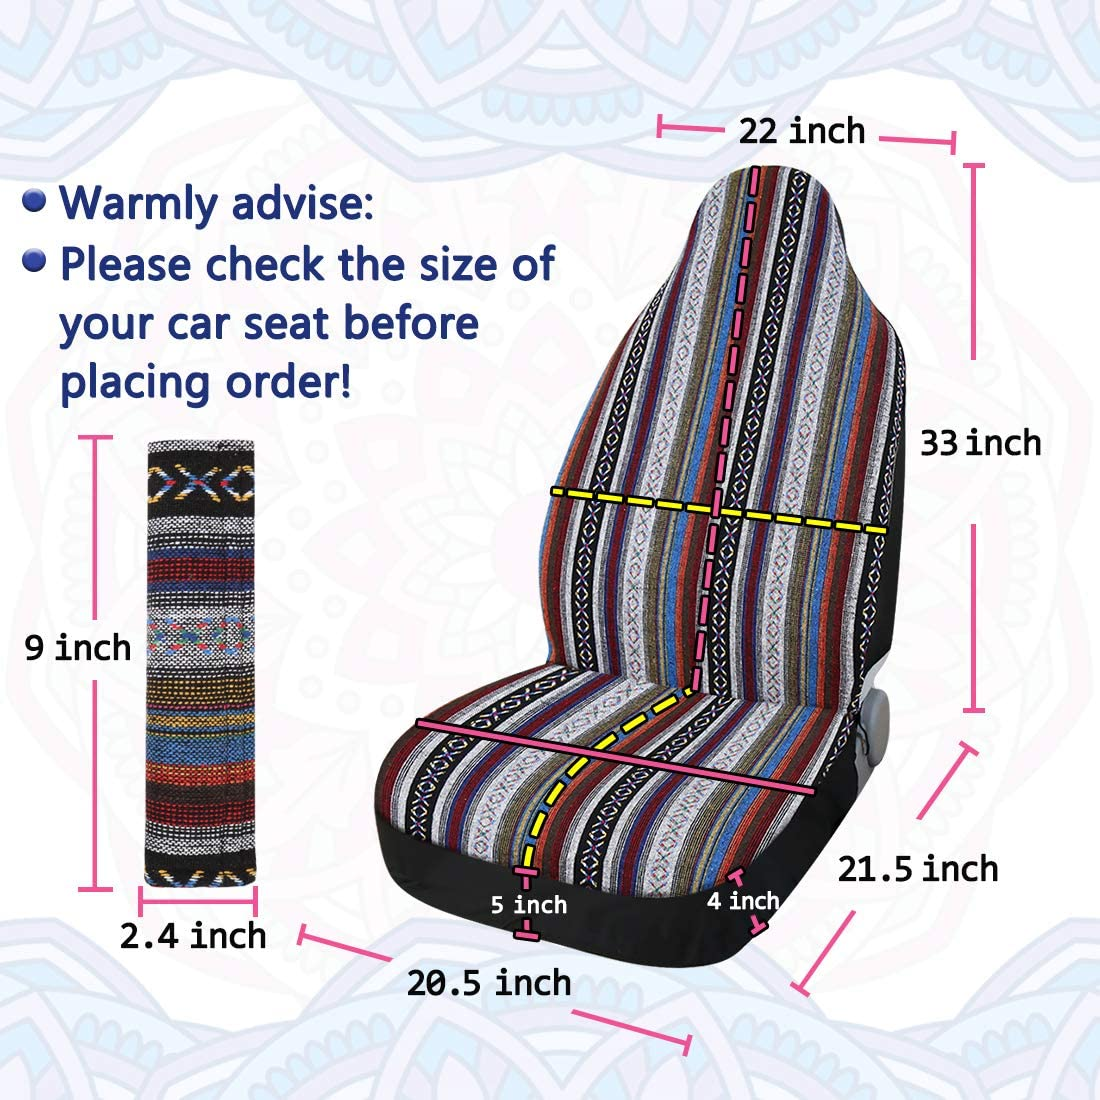 X AUTOHAUX 2 Pcs White Universal Front Seat Cover Saddle Blanket Bucket Seat Cover with Seat-Belt Pad Protectors for Car SUV Truck